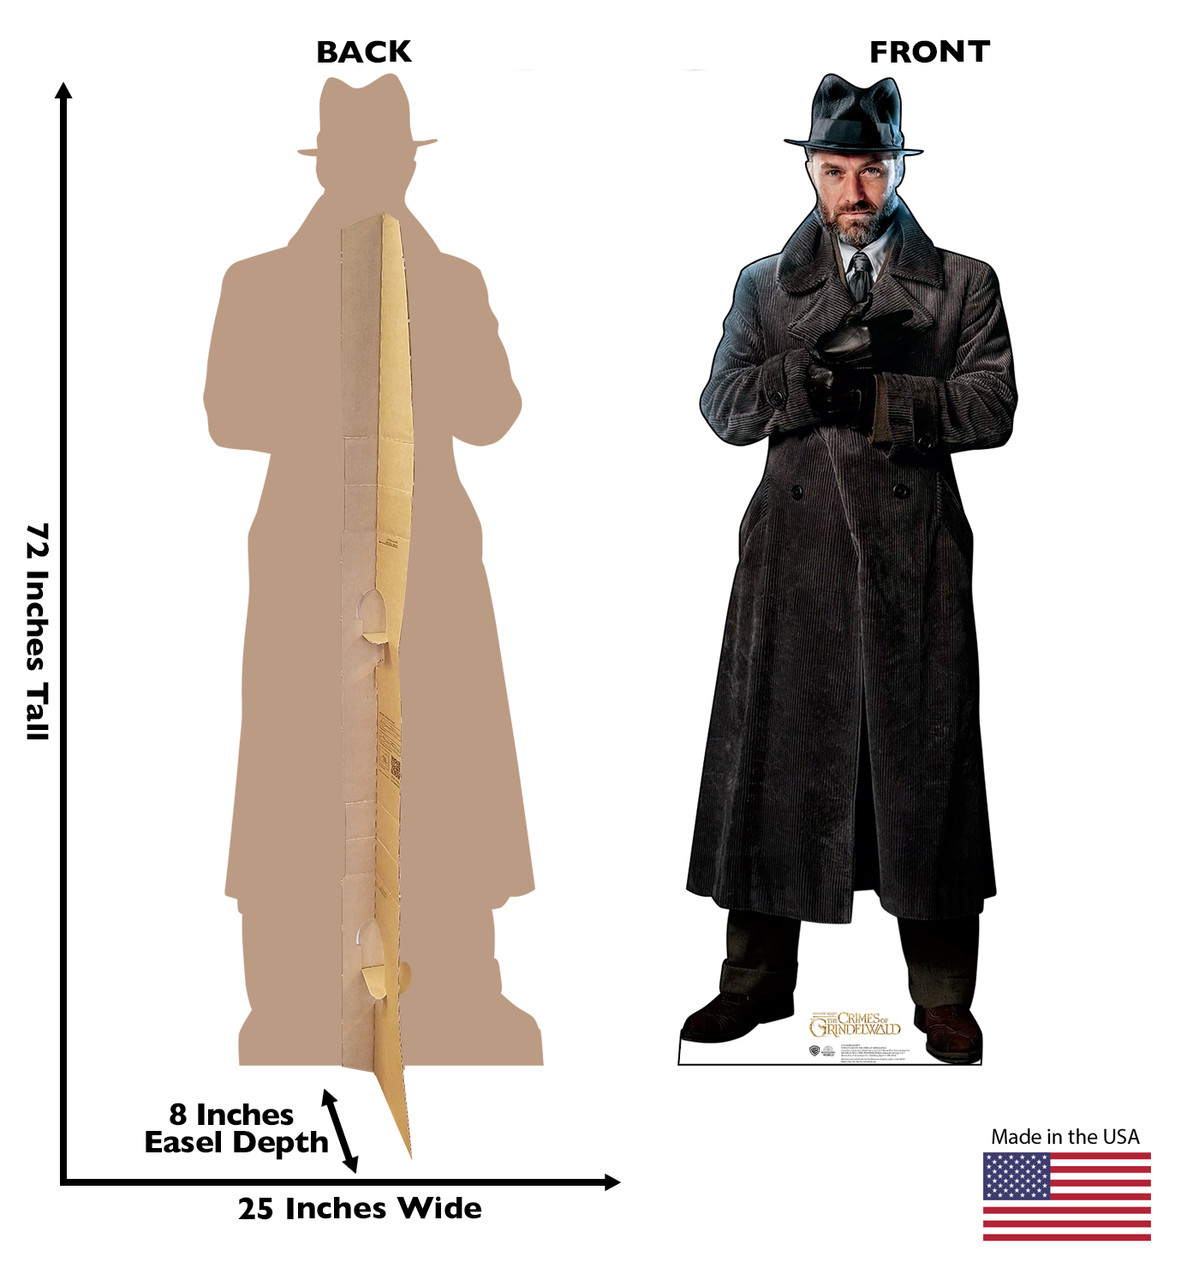 Dumbledore Lifes-size Cardboard Standee Front and Back with Dimensions.